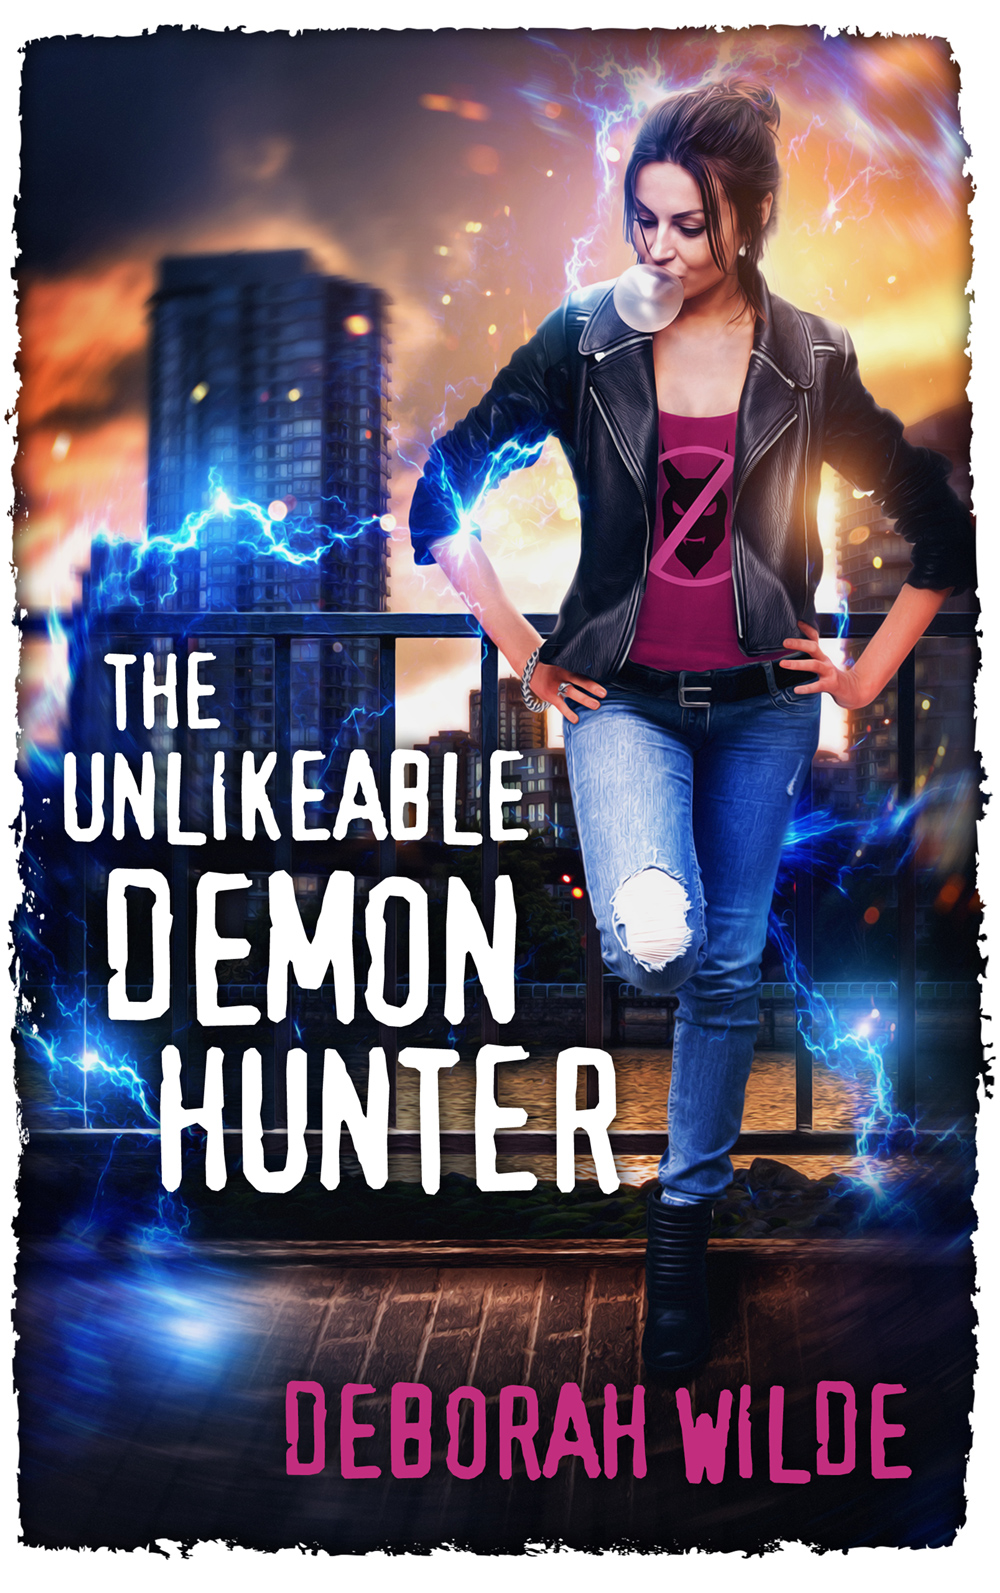 #BlogTour: The Unlikeable Demon Hunter by Deborah Wilde @wildeauthor @InkSlingerPR #Review #Giveaway